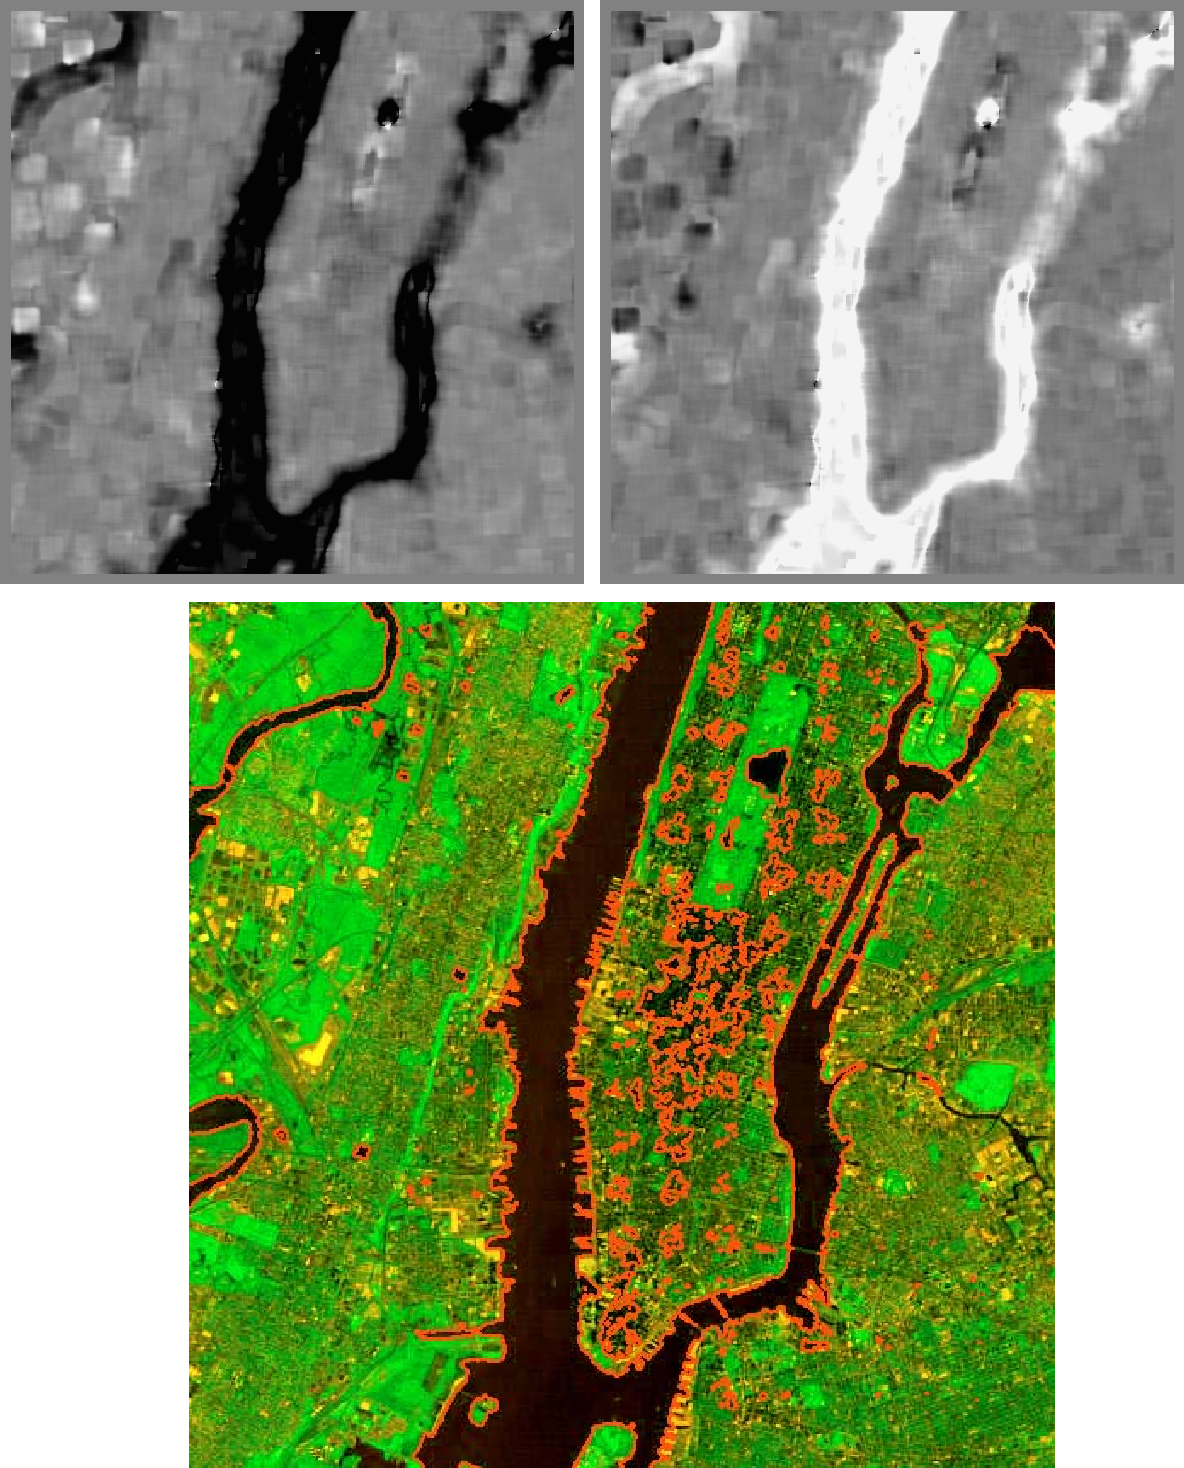 Figure 37. Multisensory segmentation after 2000 iterations with a step size of 0.1. Top: weights on the blue and IR images, respectively. Bottom: Segmentation using the developed algorithm with WLW.